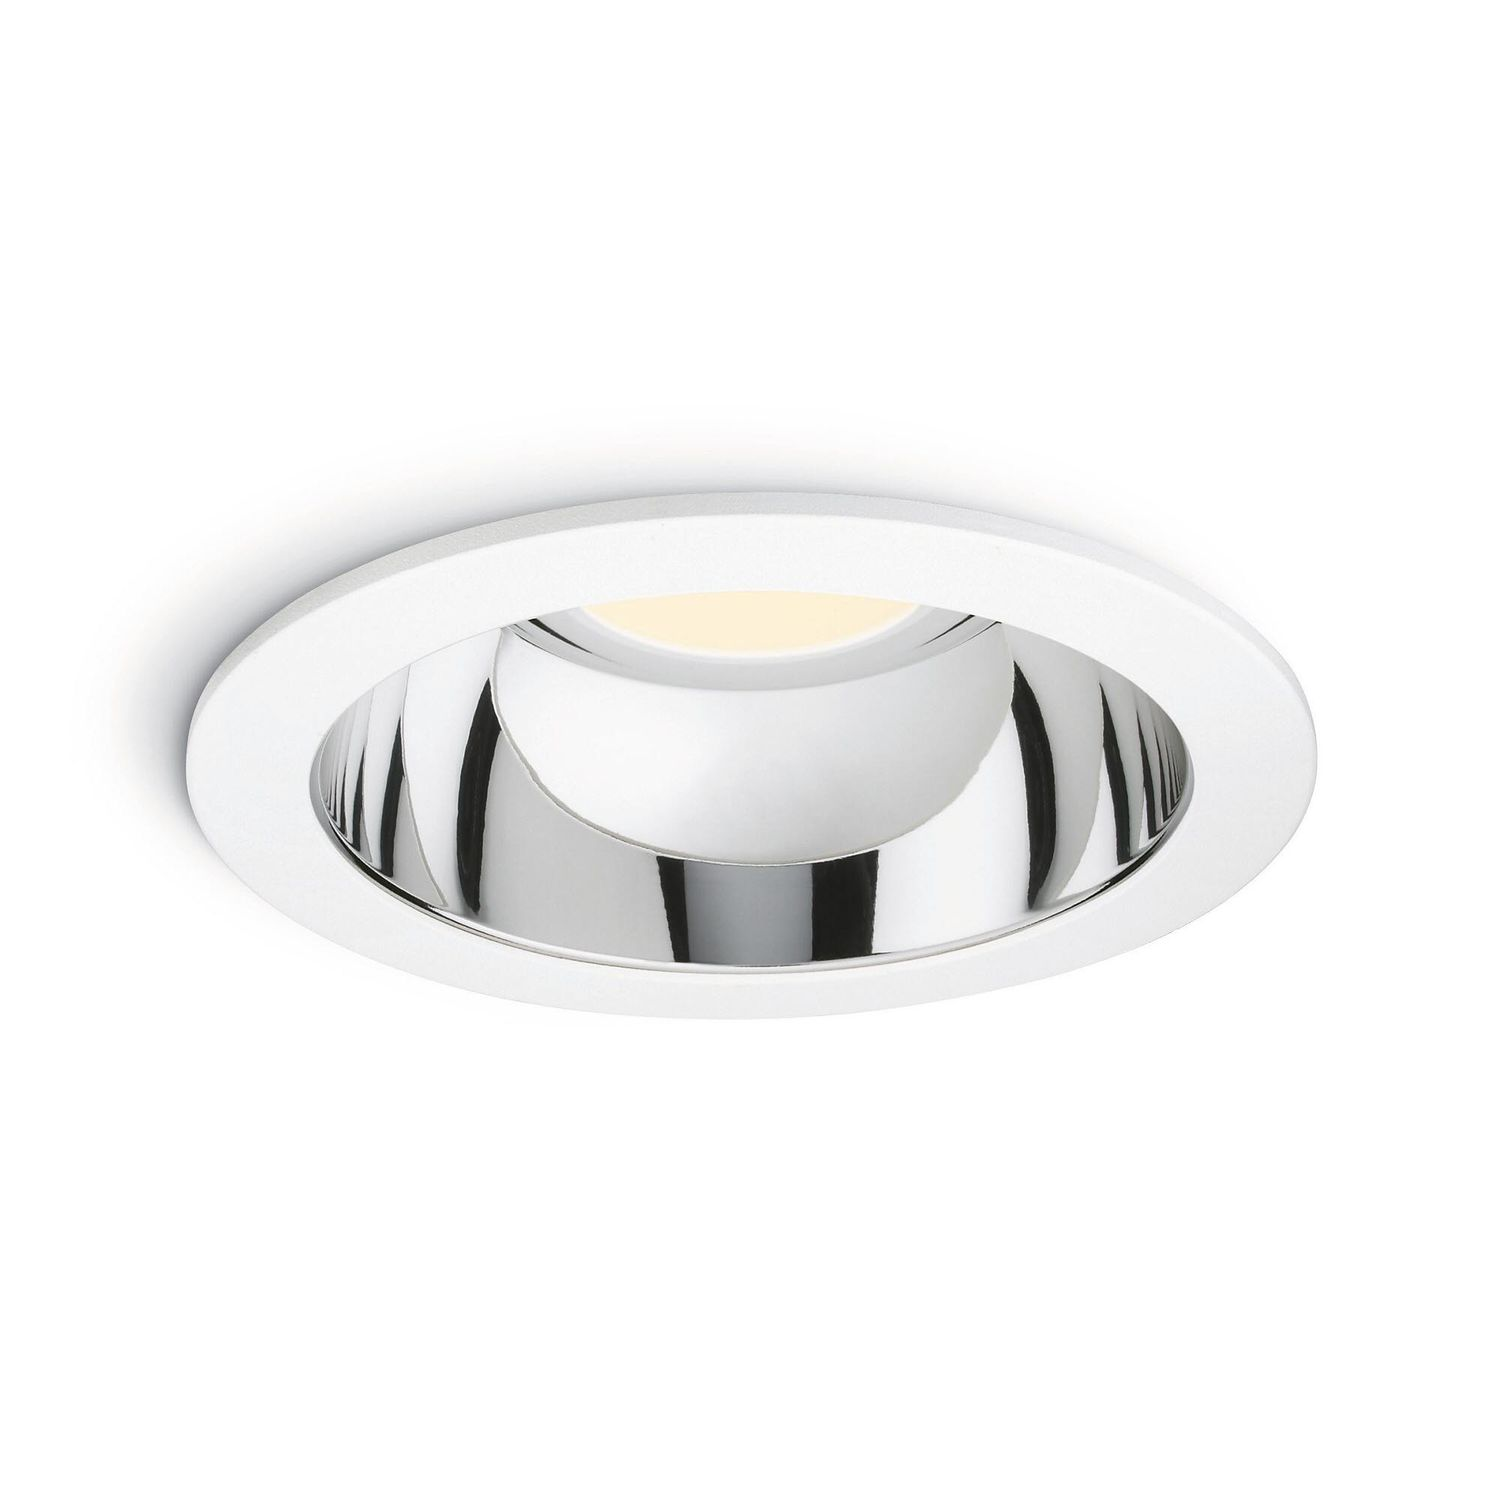 Recessed downlight surface mounted led round luxspace recessed downlight surface mounted led round luxspace aloadofball Choice Image